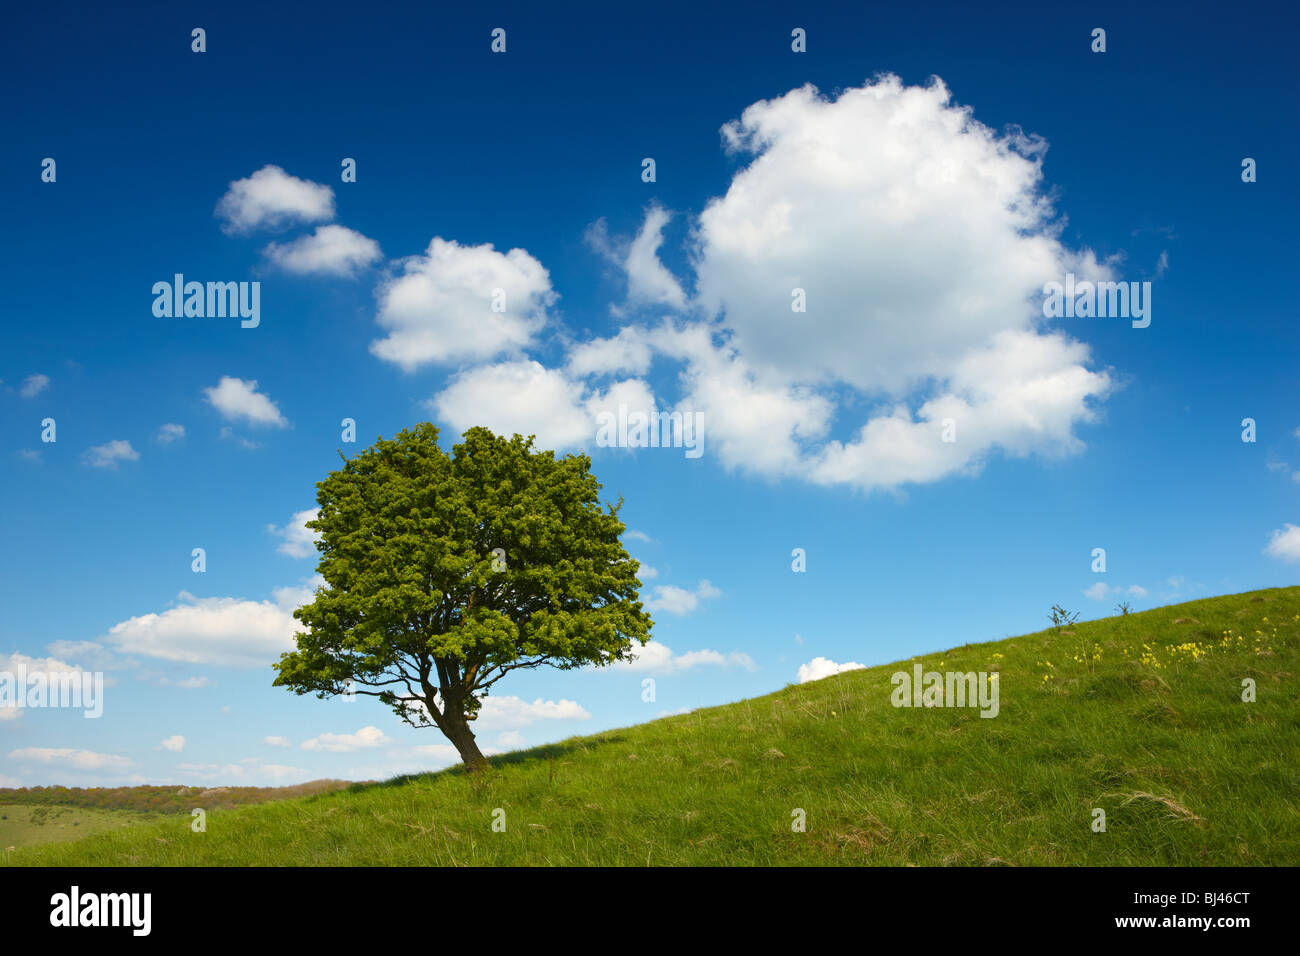 Lone tree on a hilltop in the Buckinghamshire countryside - Stock Image